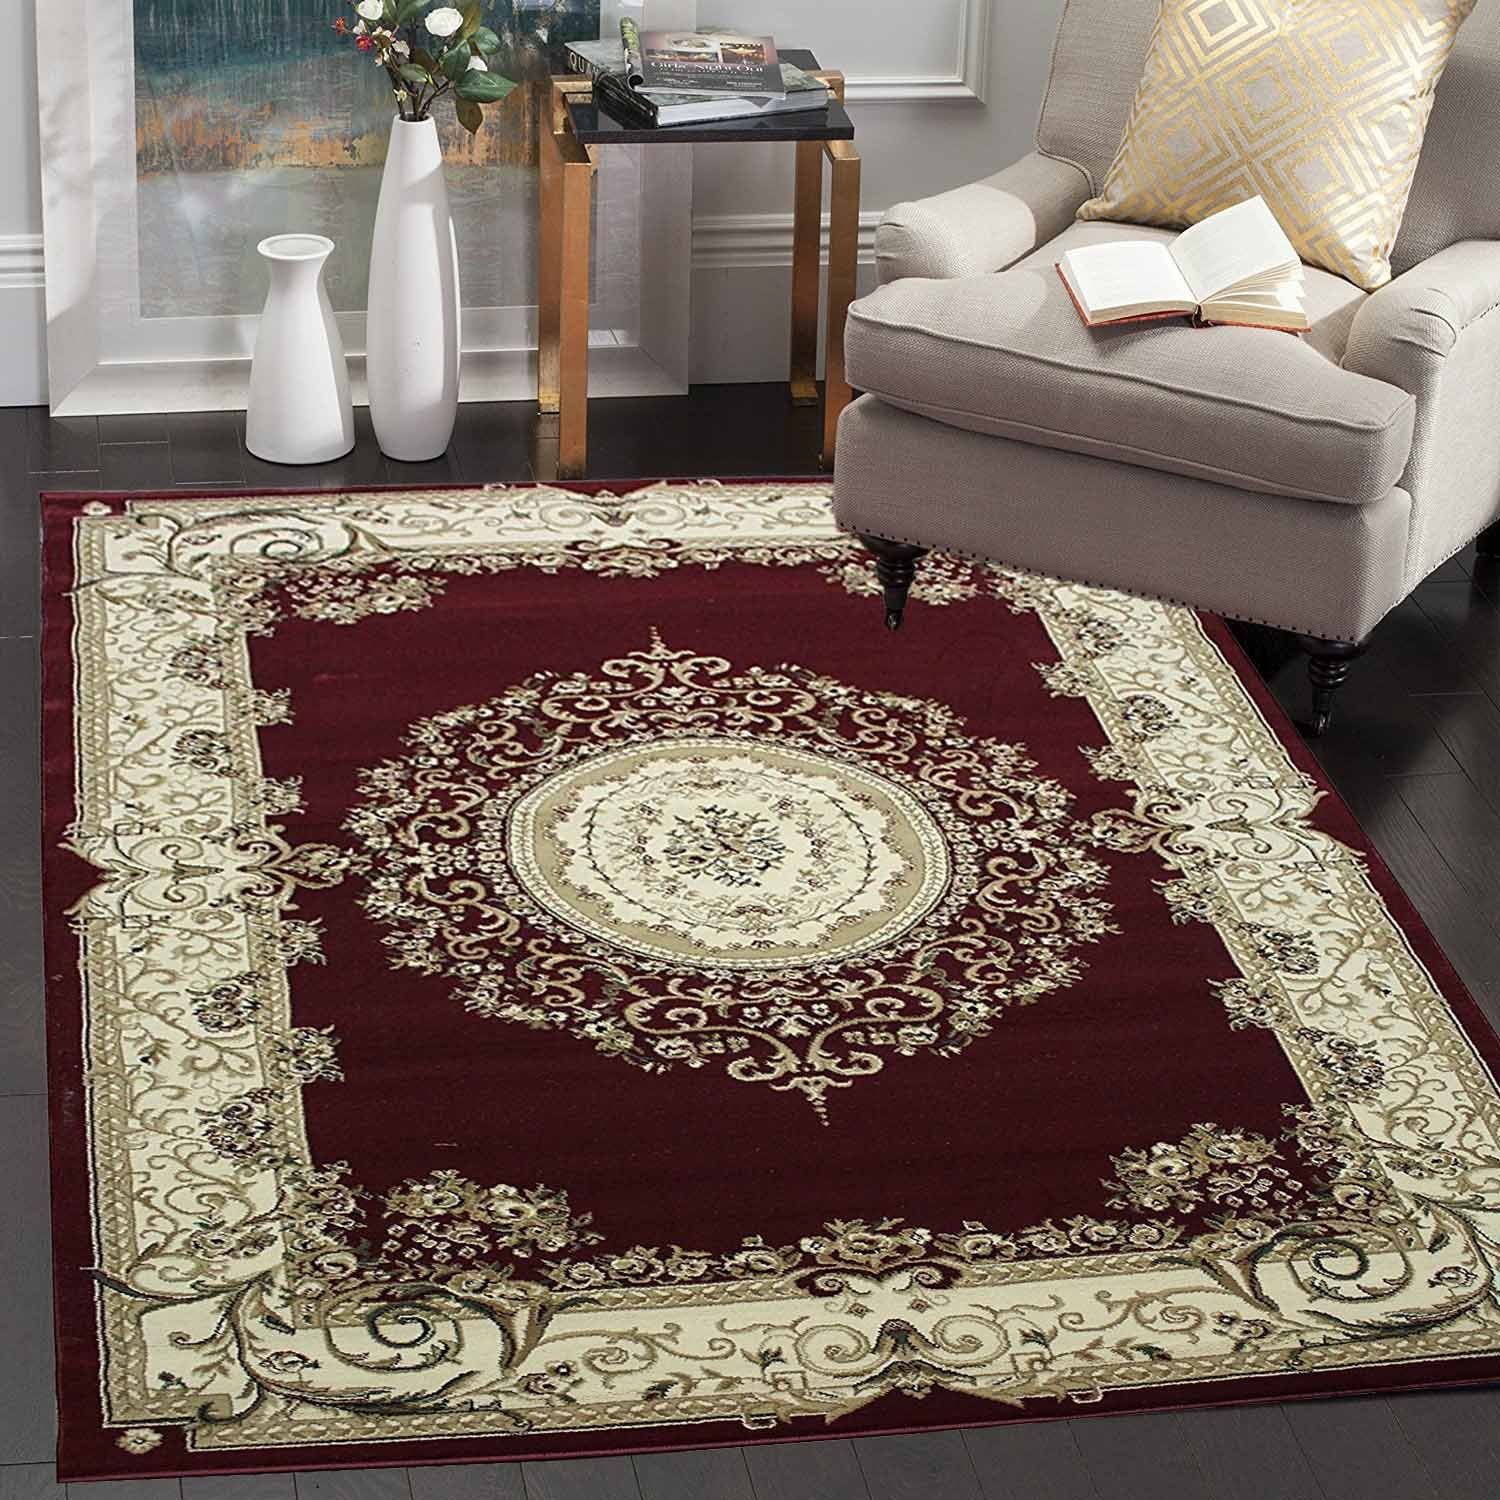 Persian classic dark red burgundy 8x10 area rug oriental floral classic pattern antique living dining room bedroom office carpet easy clean traditional soft